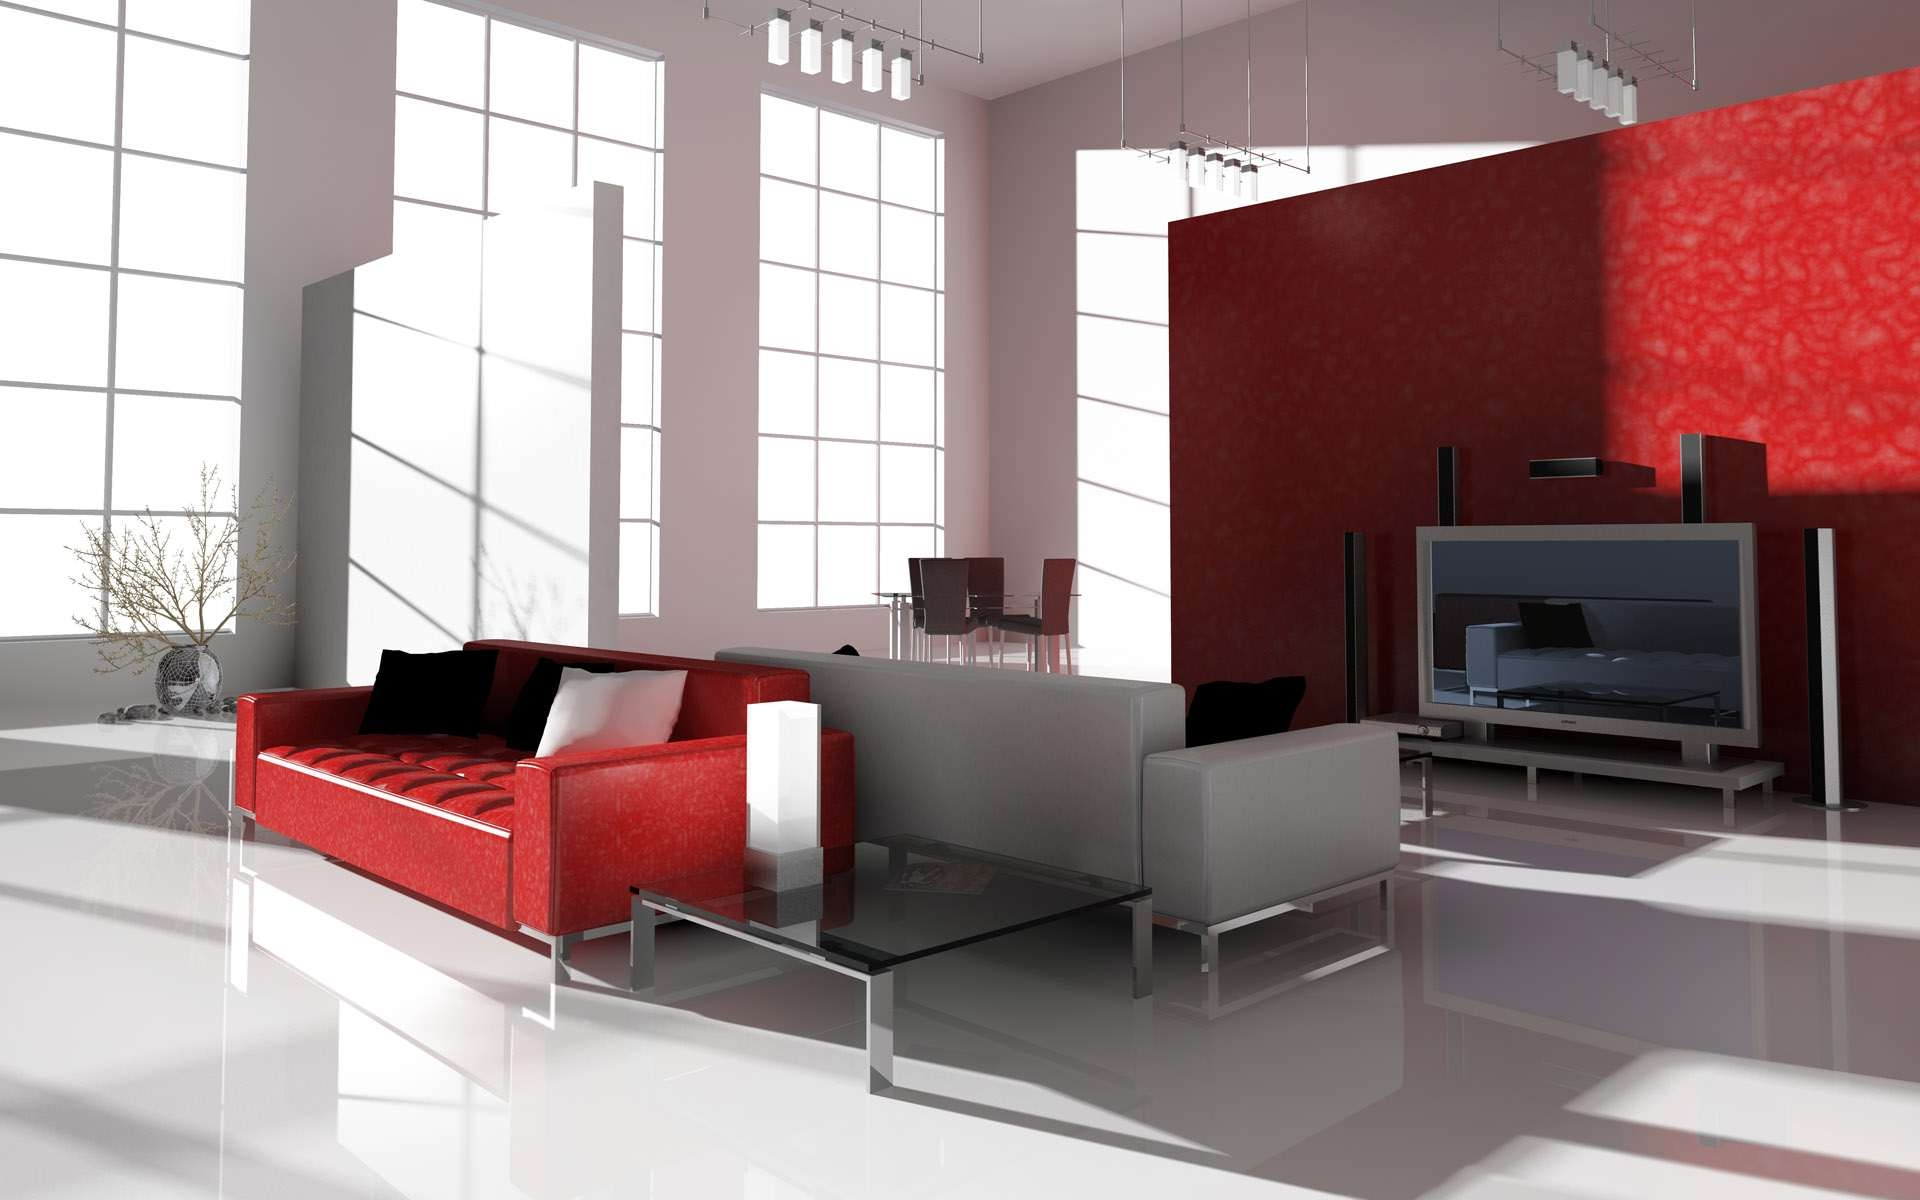 Incredible Interior Elegant Interior Home Designs Red White Theme Upholstery Sofa And Square Glass Counter Of Low Table Chrome Legs Style Decorated Wall Unit  Pertaining To Interior Designs For Homes - www.expofacto.co